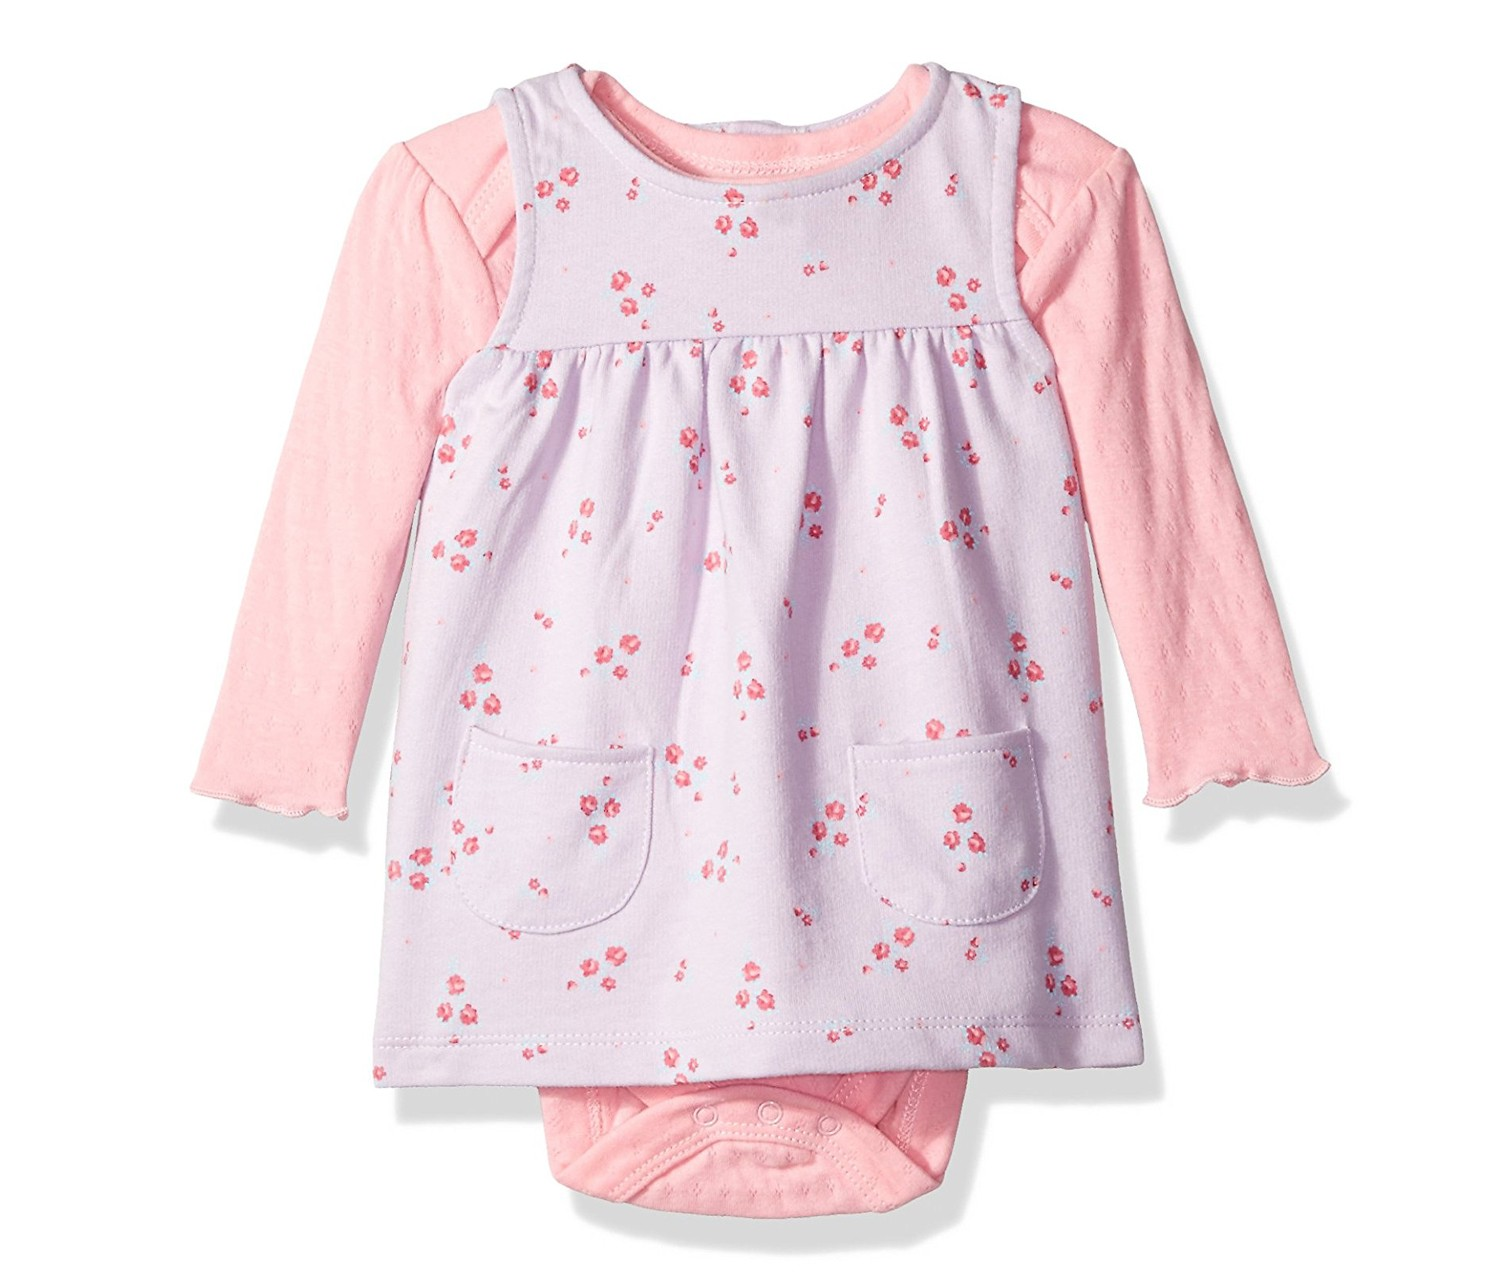 Baby Girl's French Terry Jumper And Bodysuit Set, Lilac Flowers